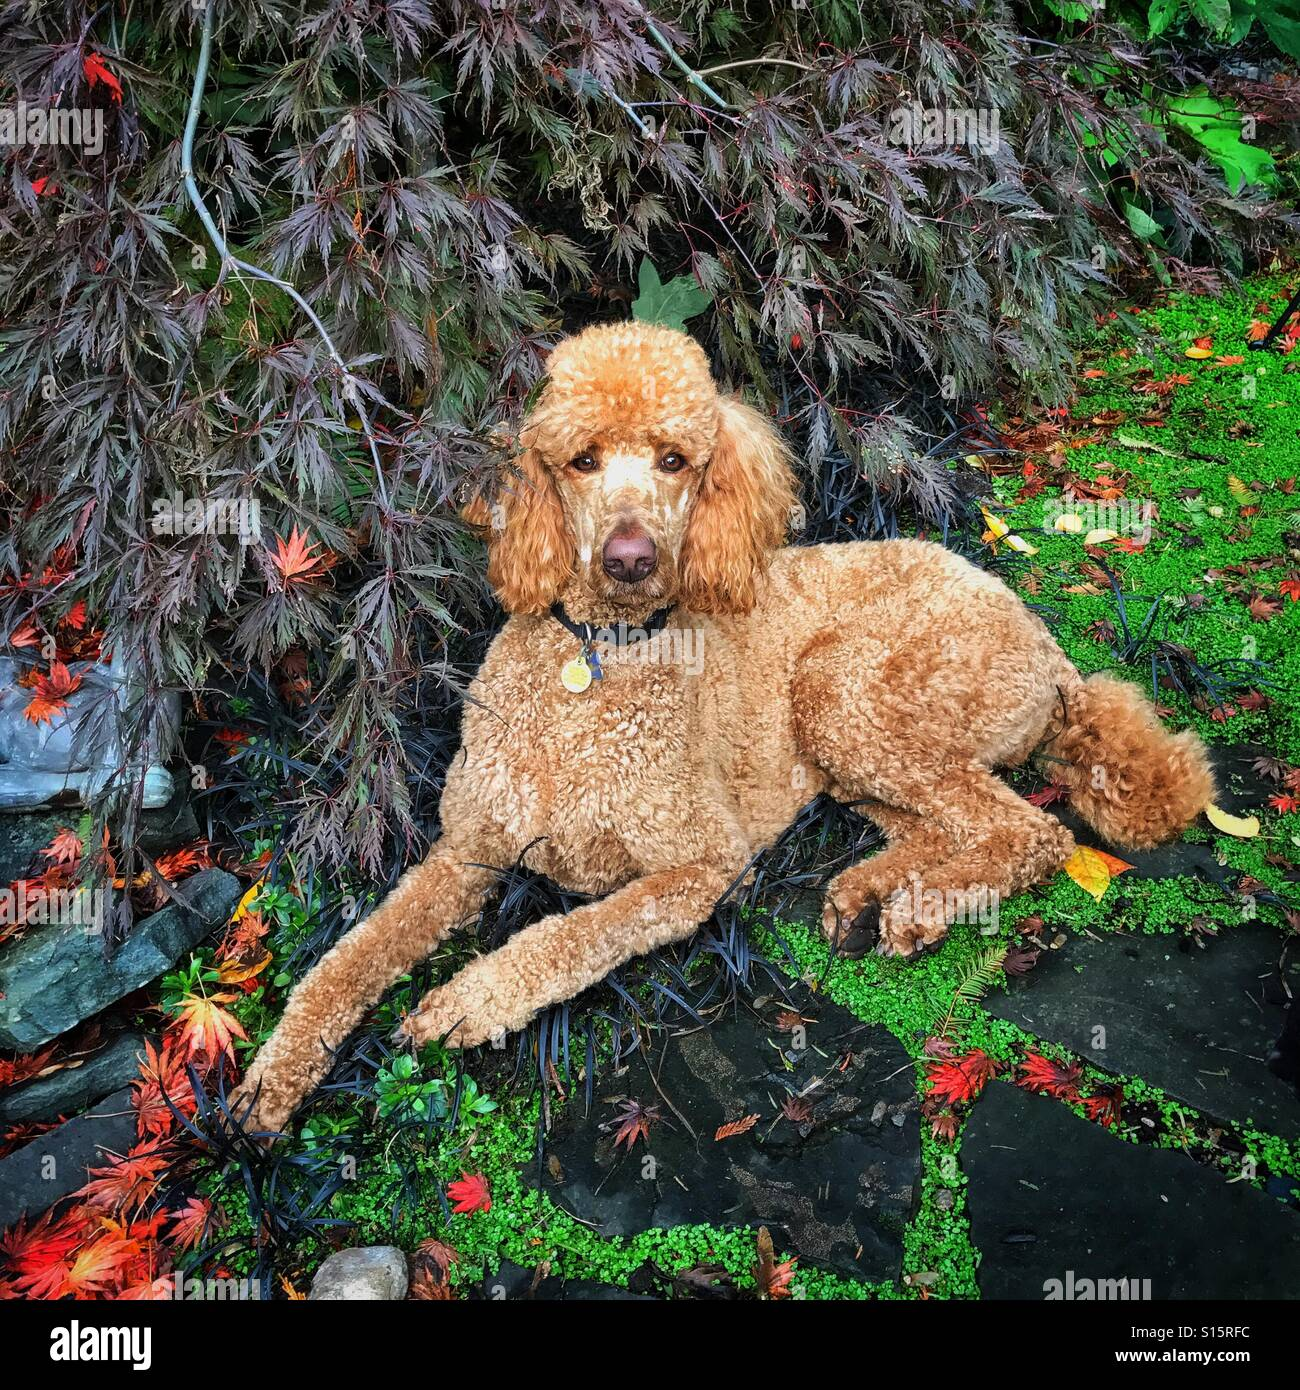 Poodle resting in a garden. - Stock Image